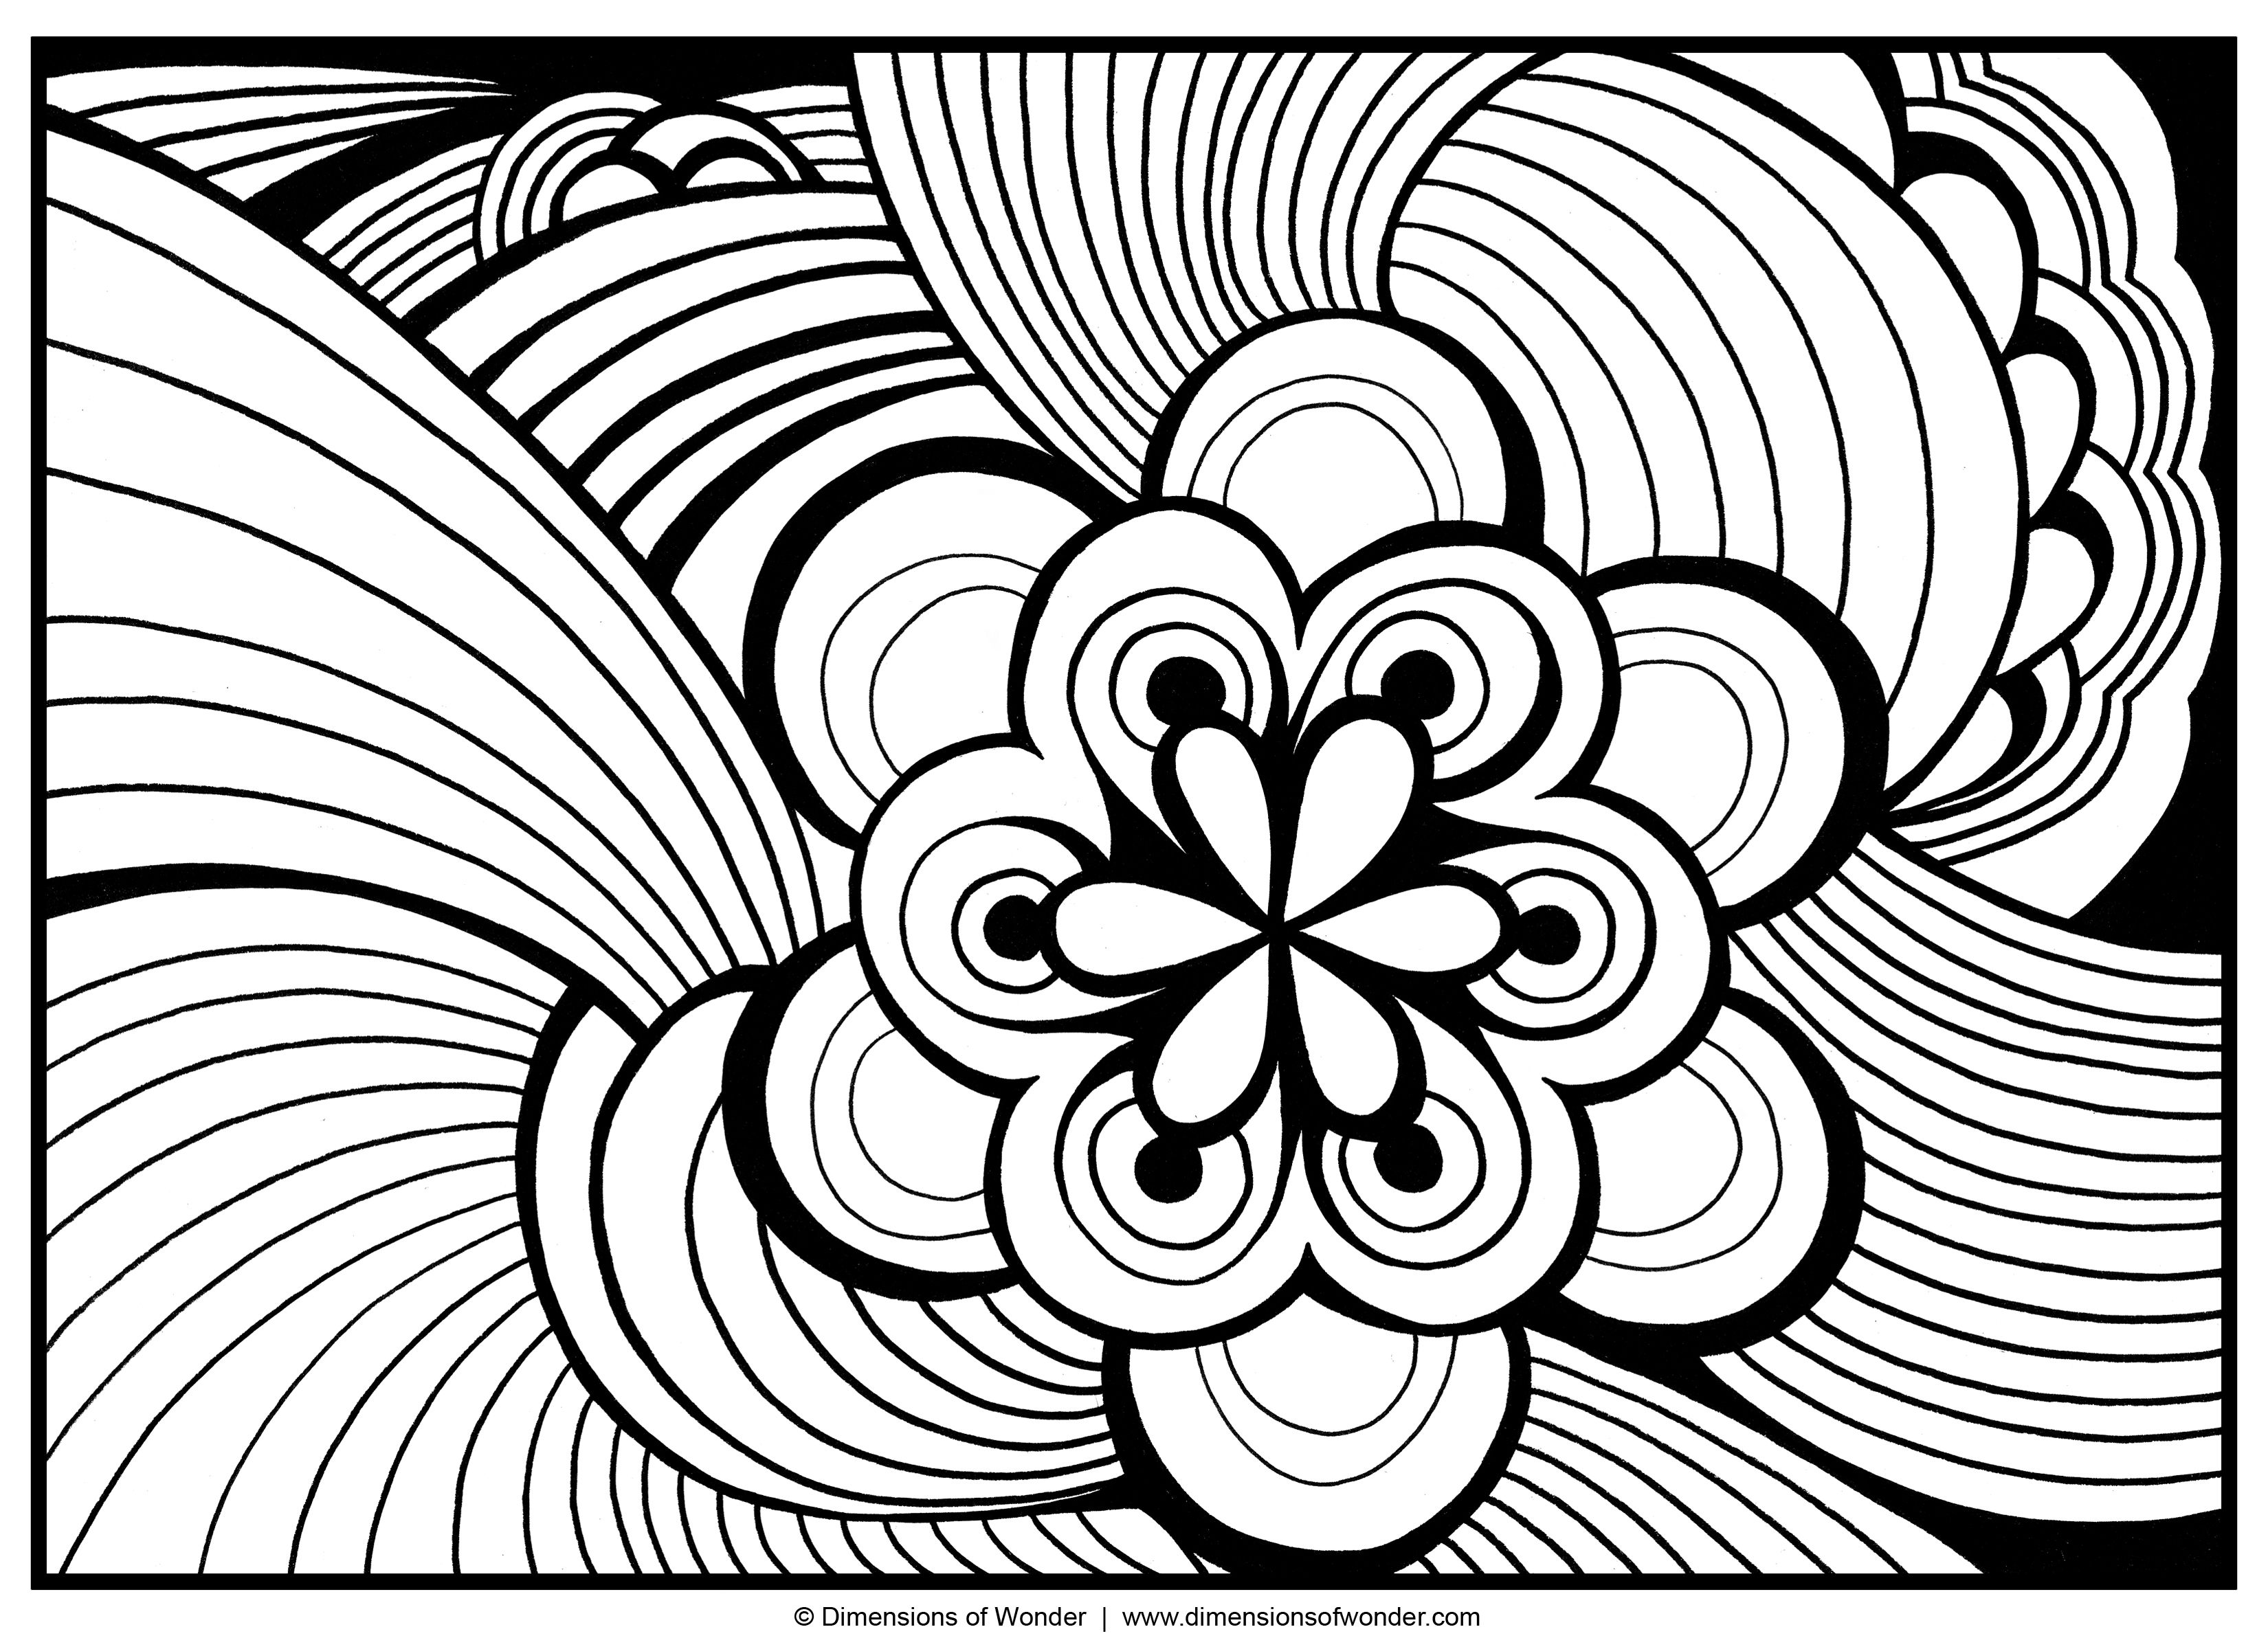 Abstract Coloring Pages - Free Large Images